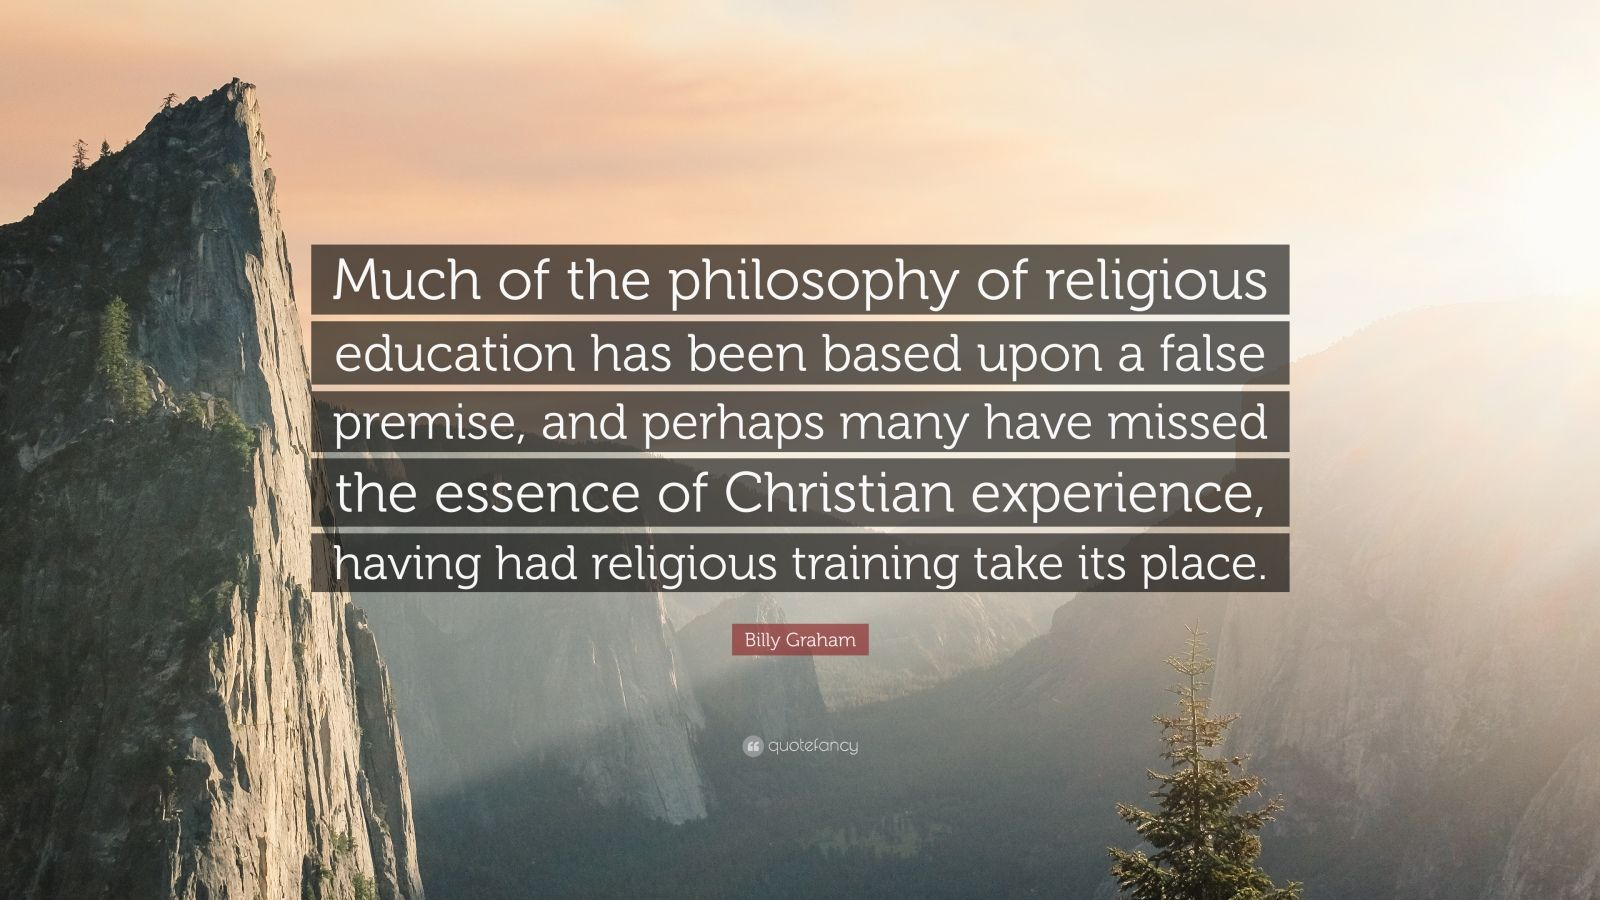 """Billy Graham Quote: """"Much of the philosophy of religious education has been based upon a false premise, and perhaps many have missed the essence of Christian experience, having had religious training take its place."""""""